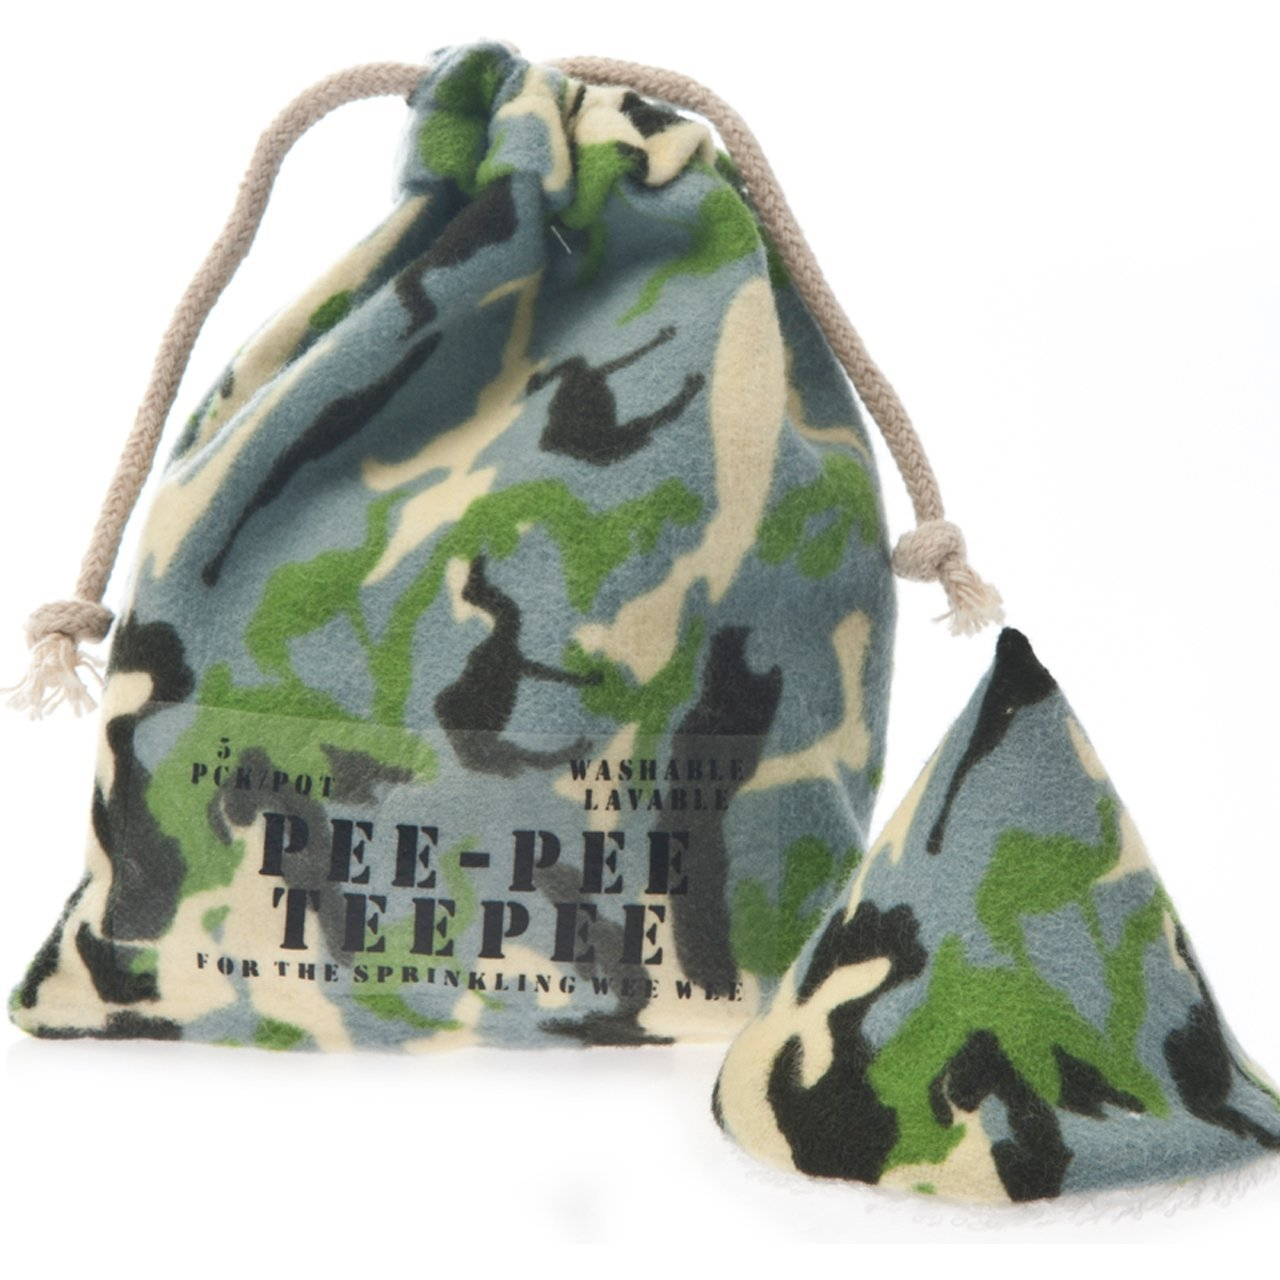 Pee-Pee Teepee Camo Green - Laundry Bag